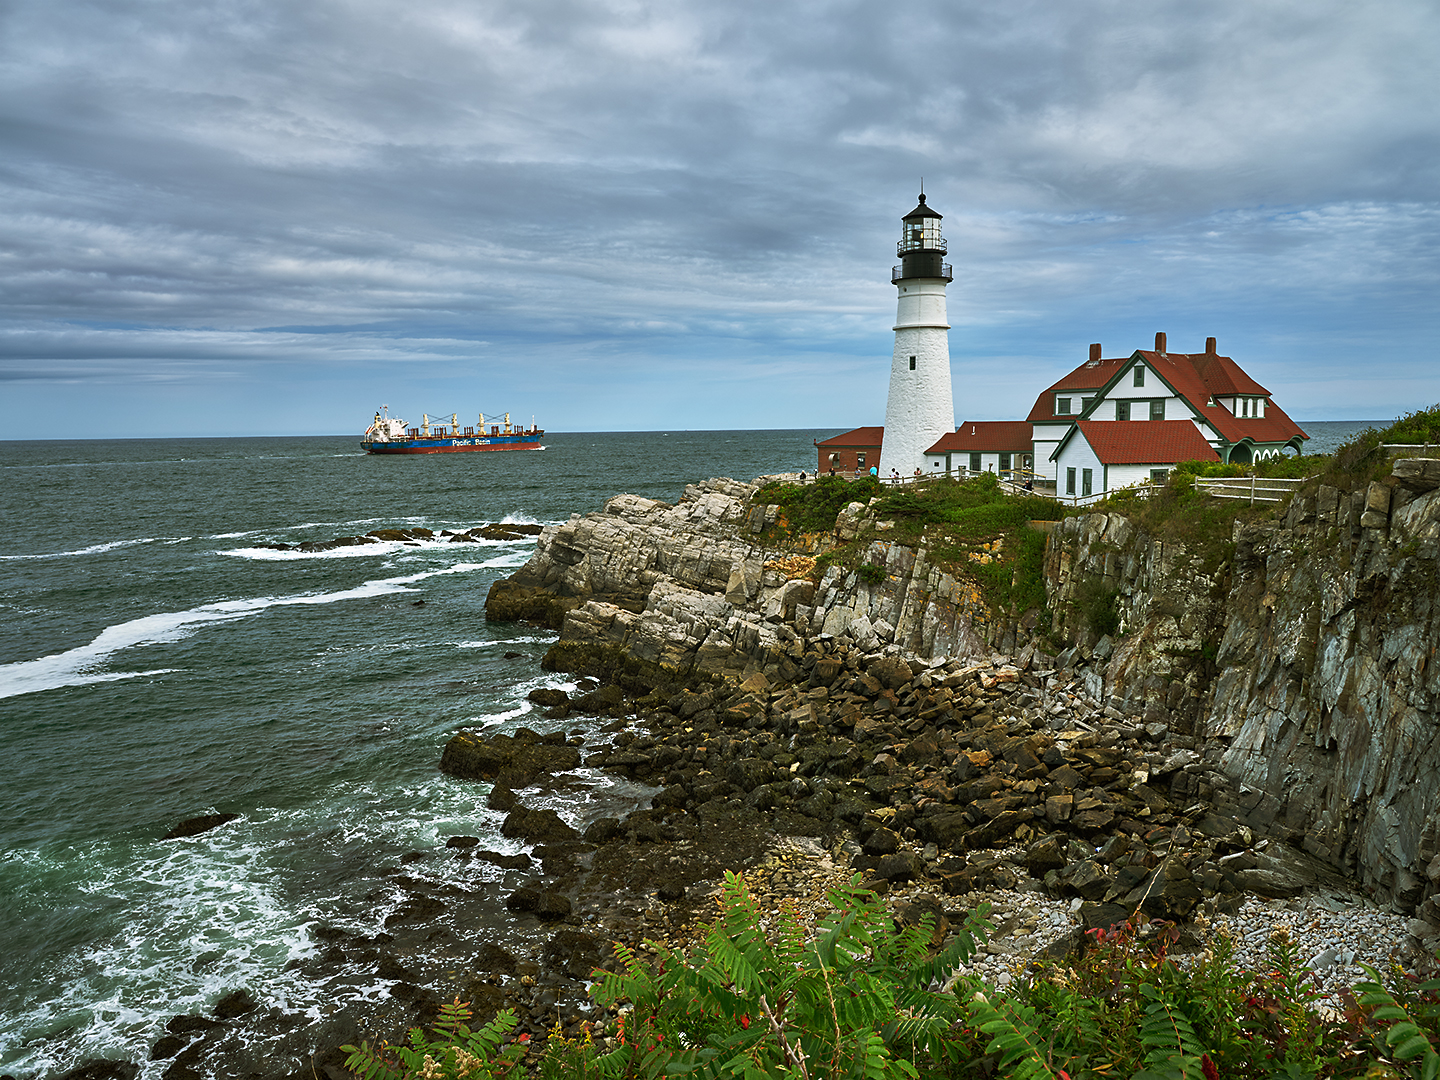 Portland Head, LIghthouse #2